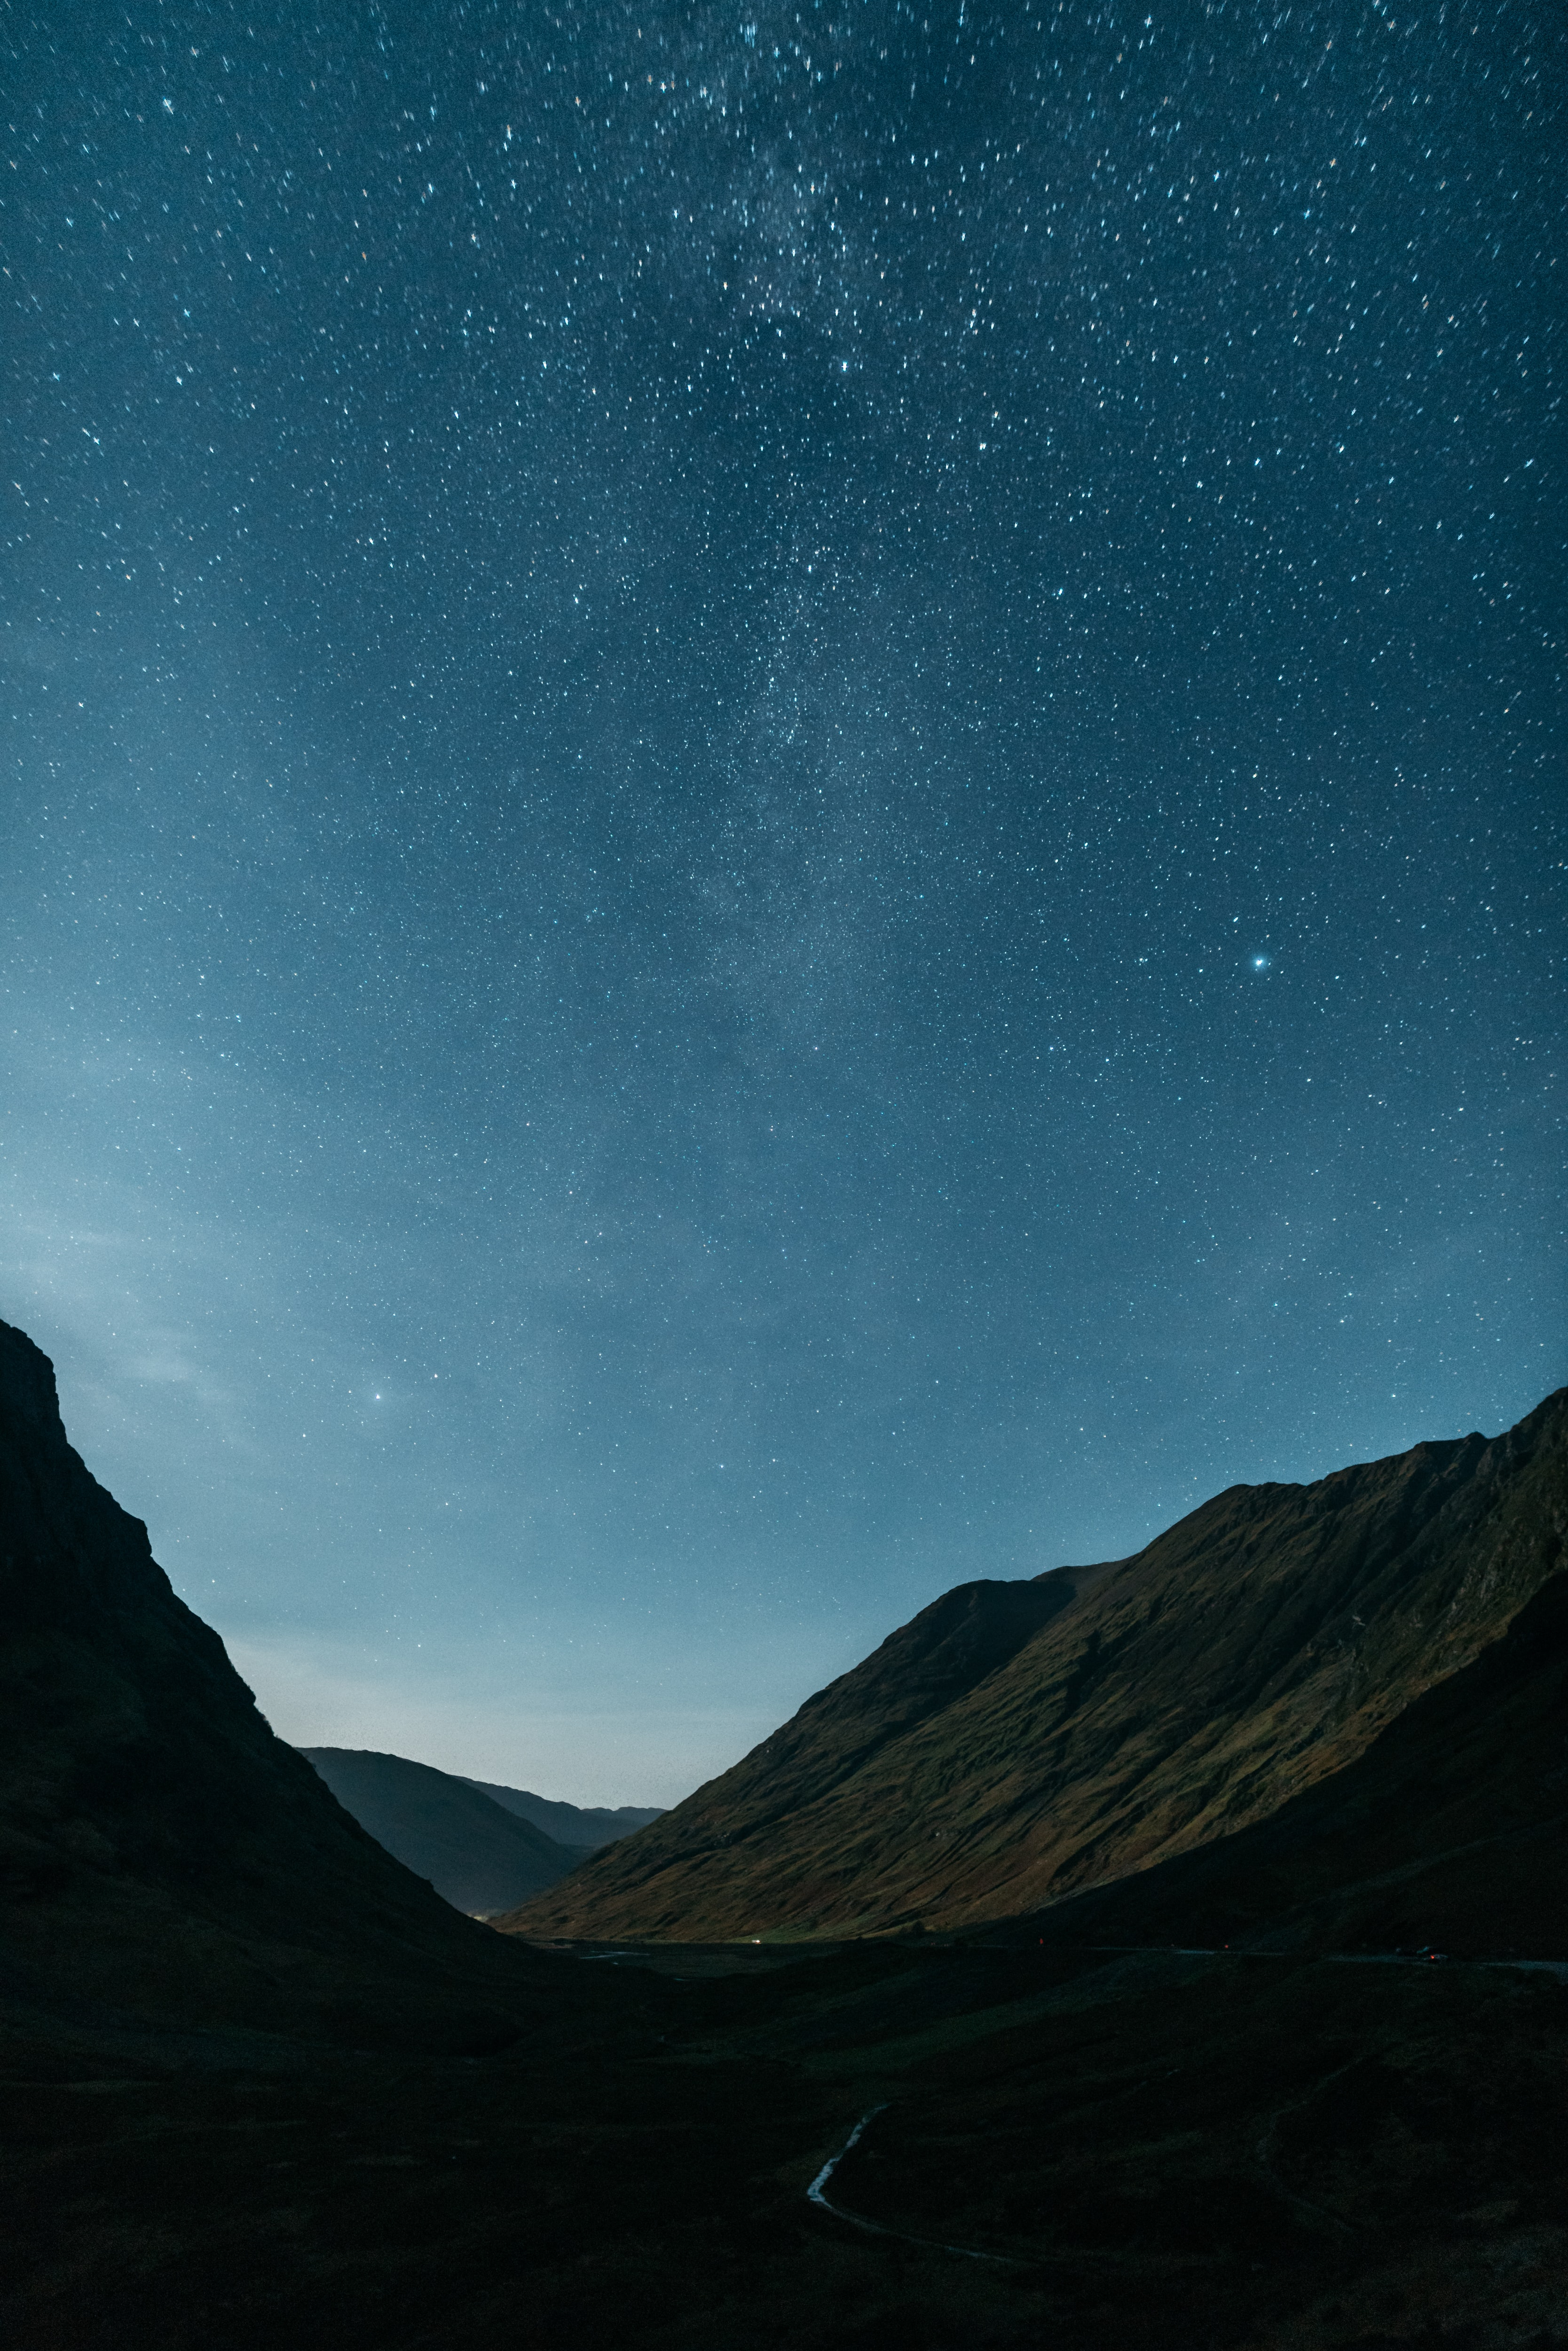 stars over mountains during daytime